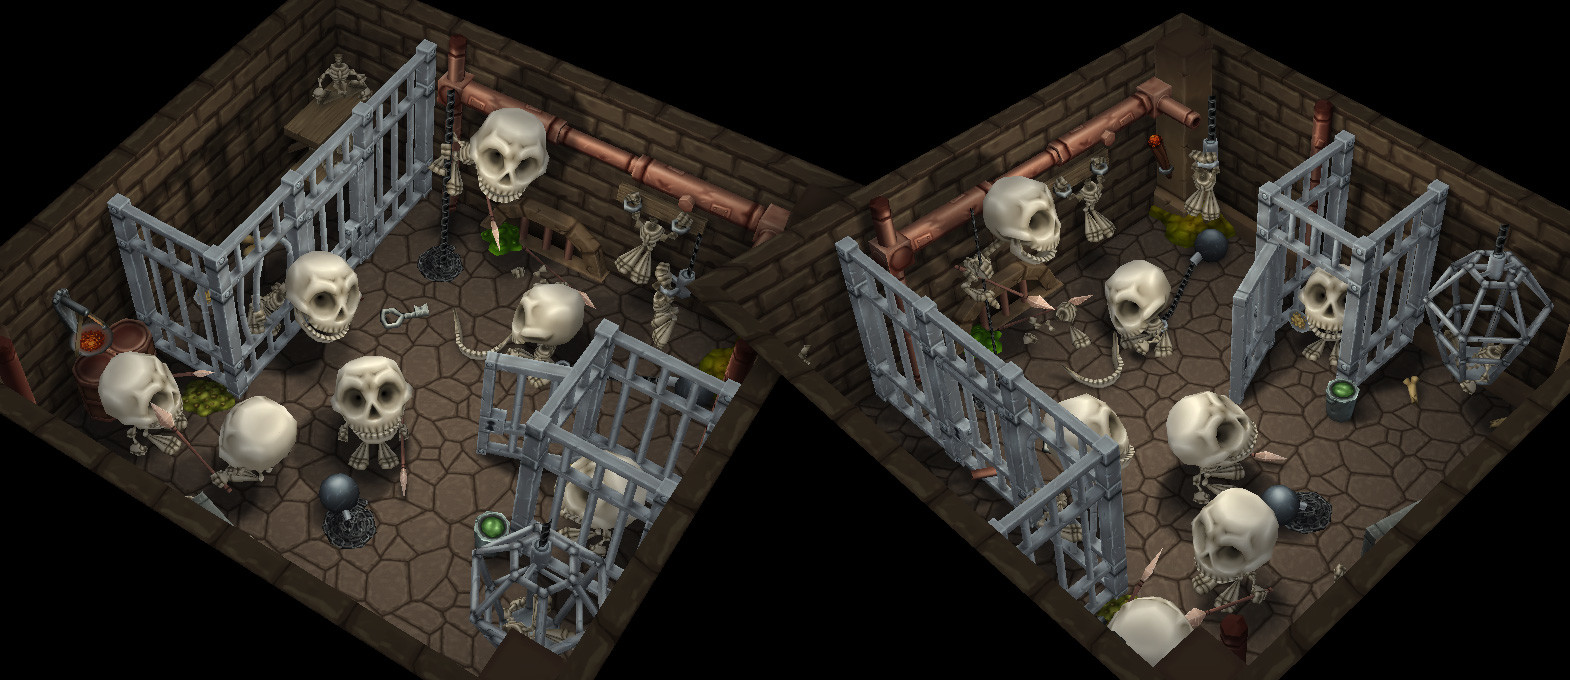 Jail with Skeletons